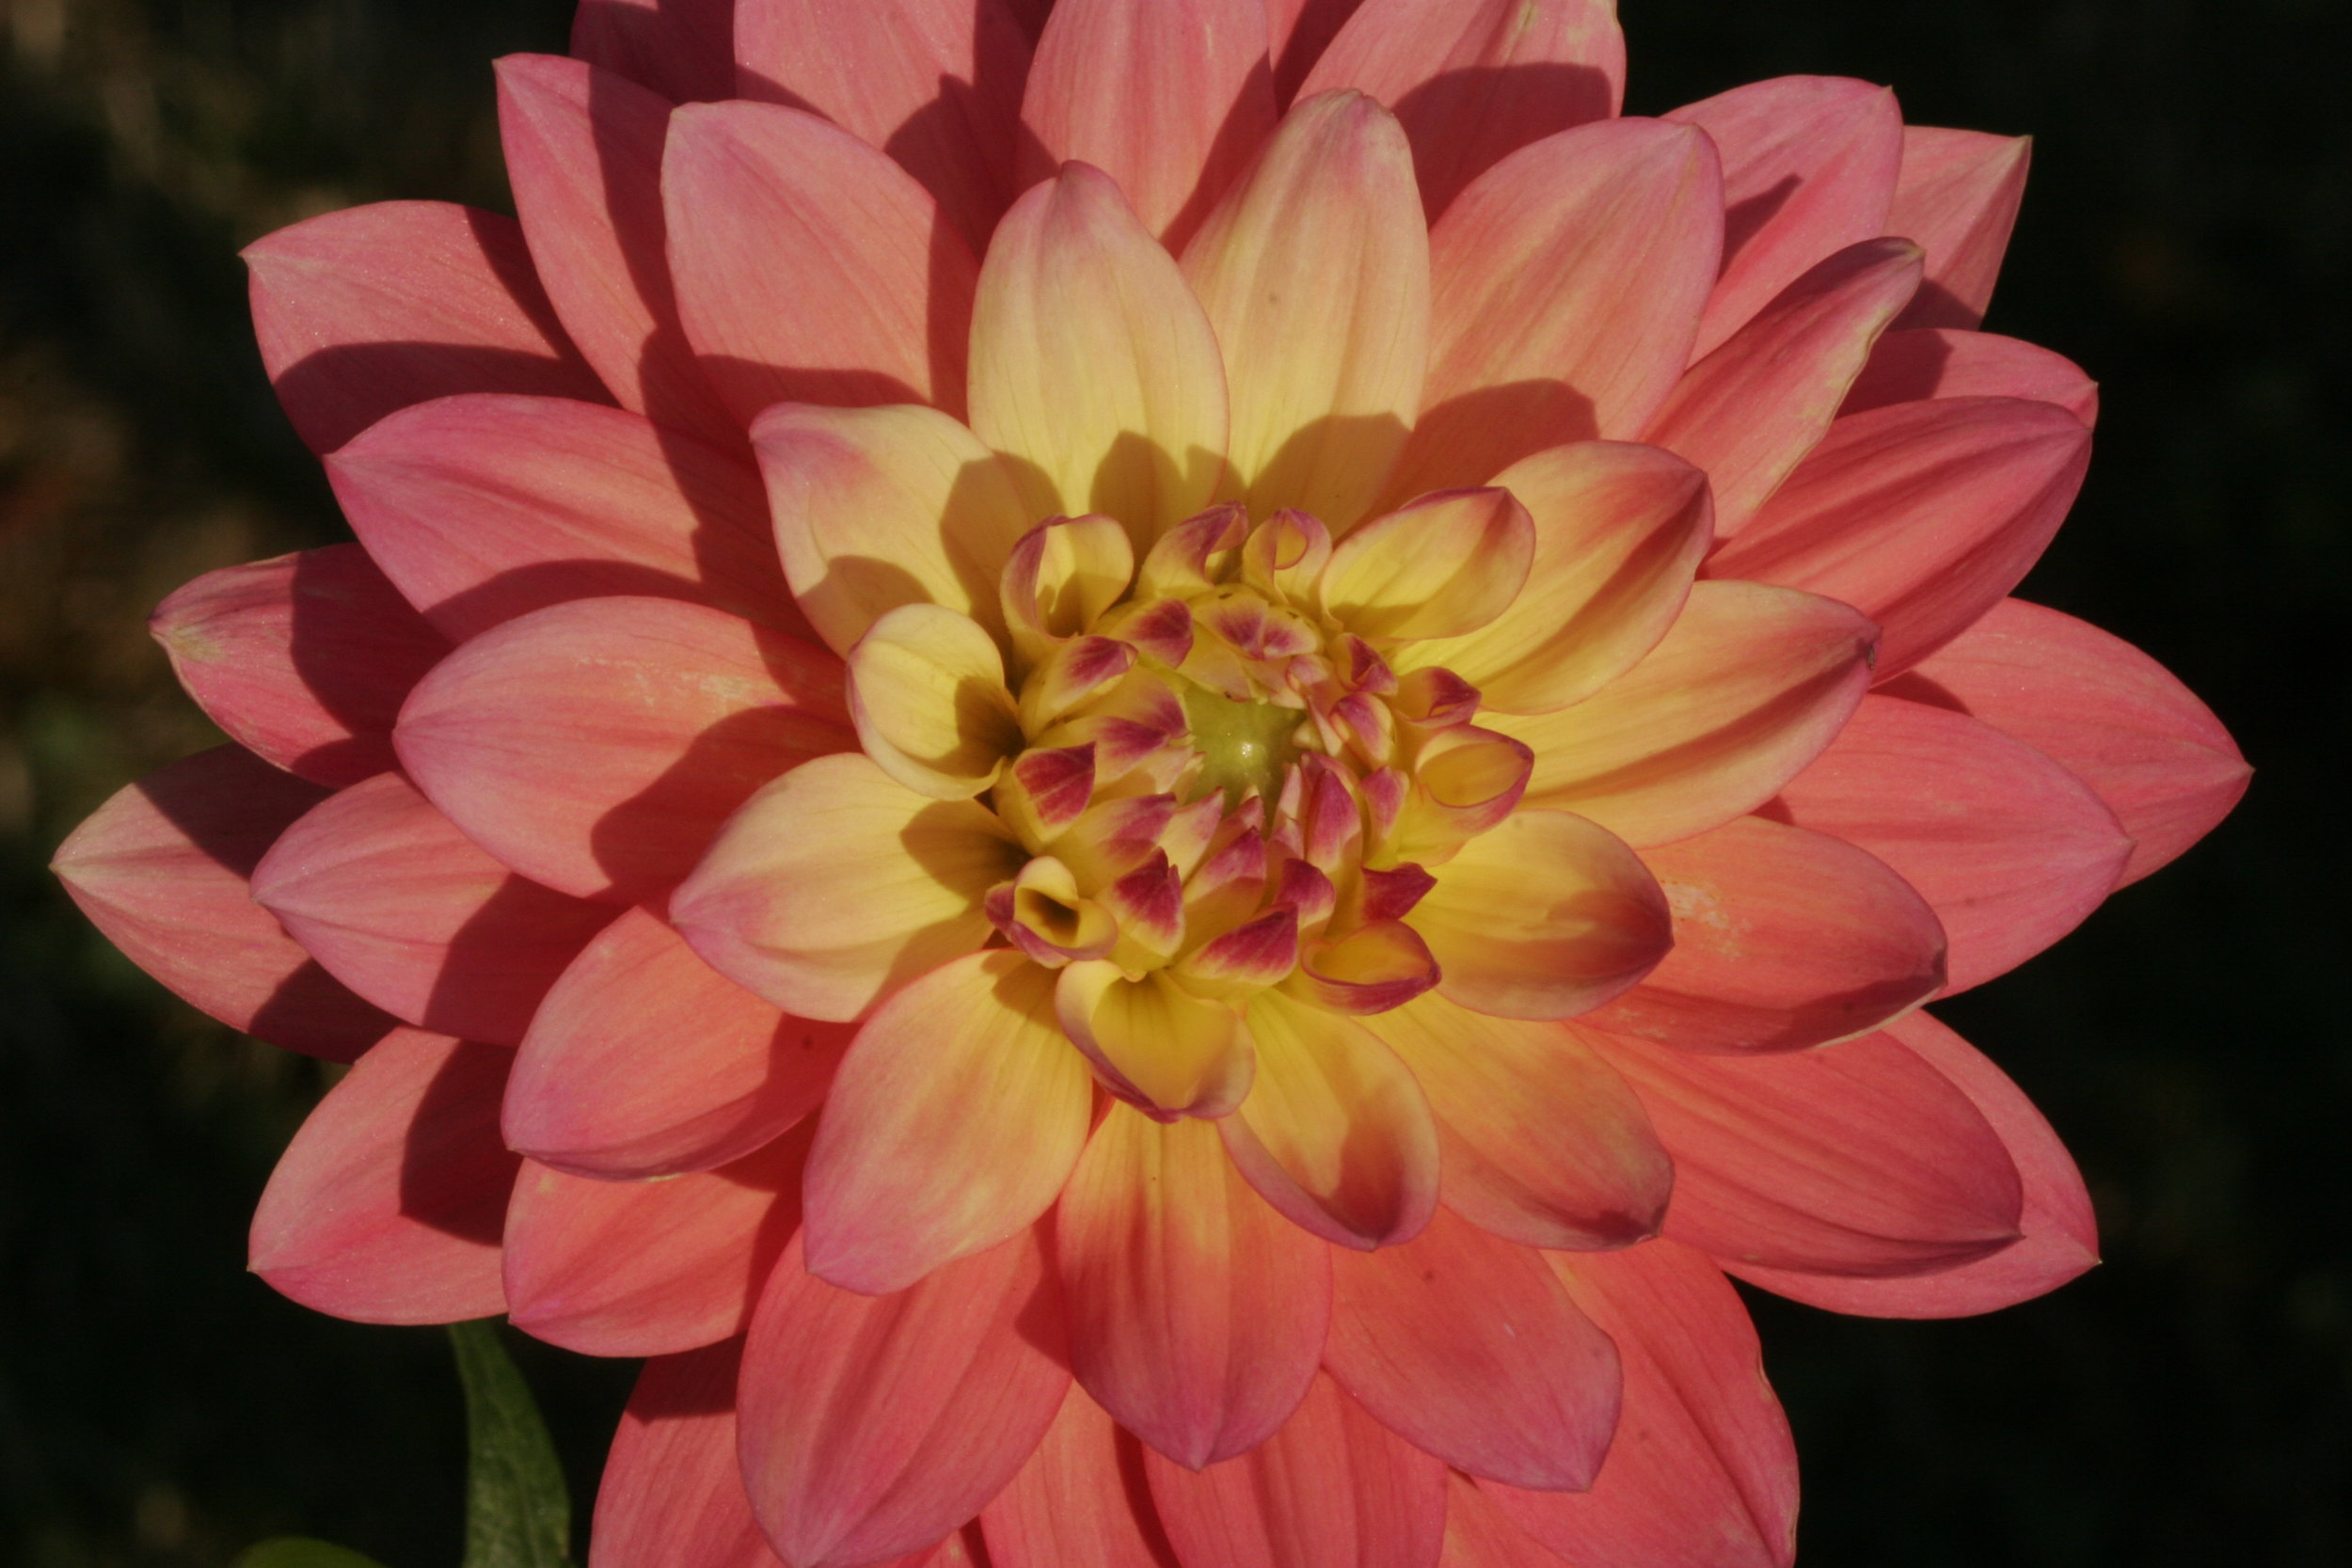 Dahlia in Setting Sunlight